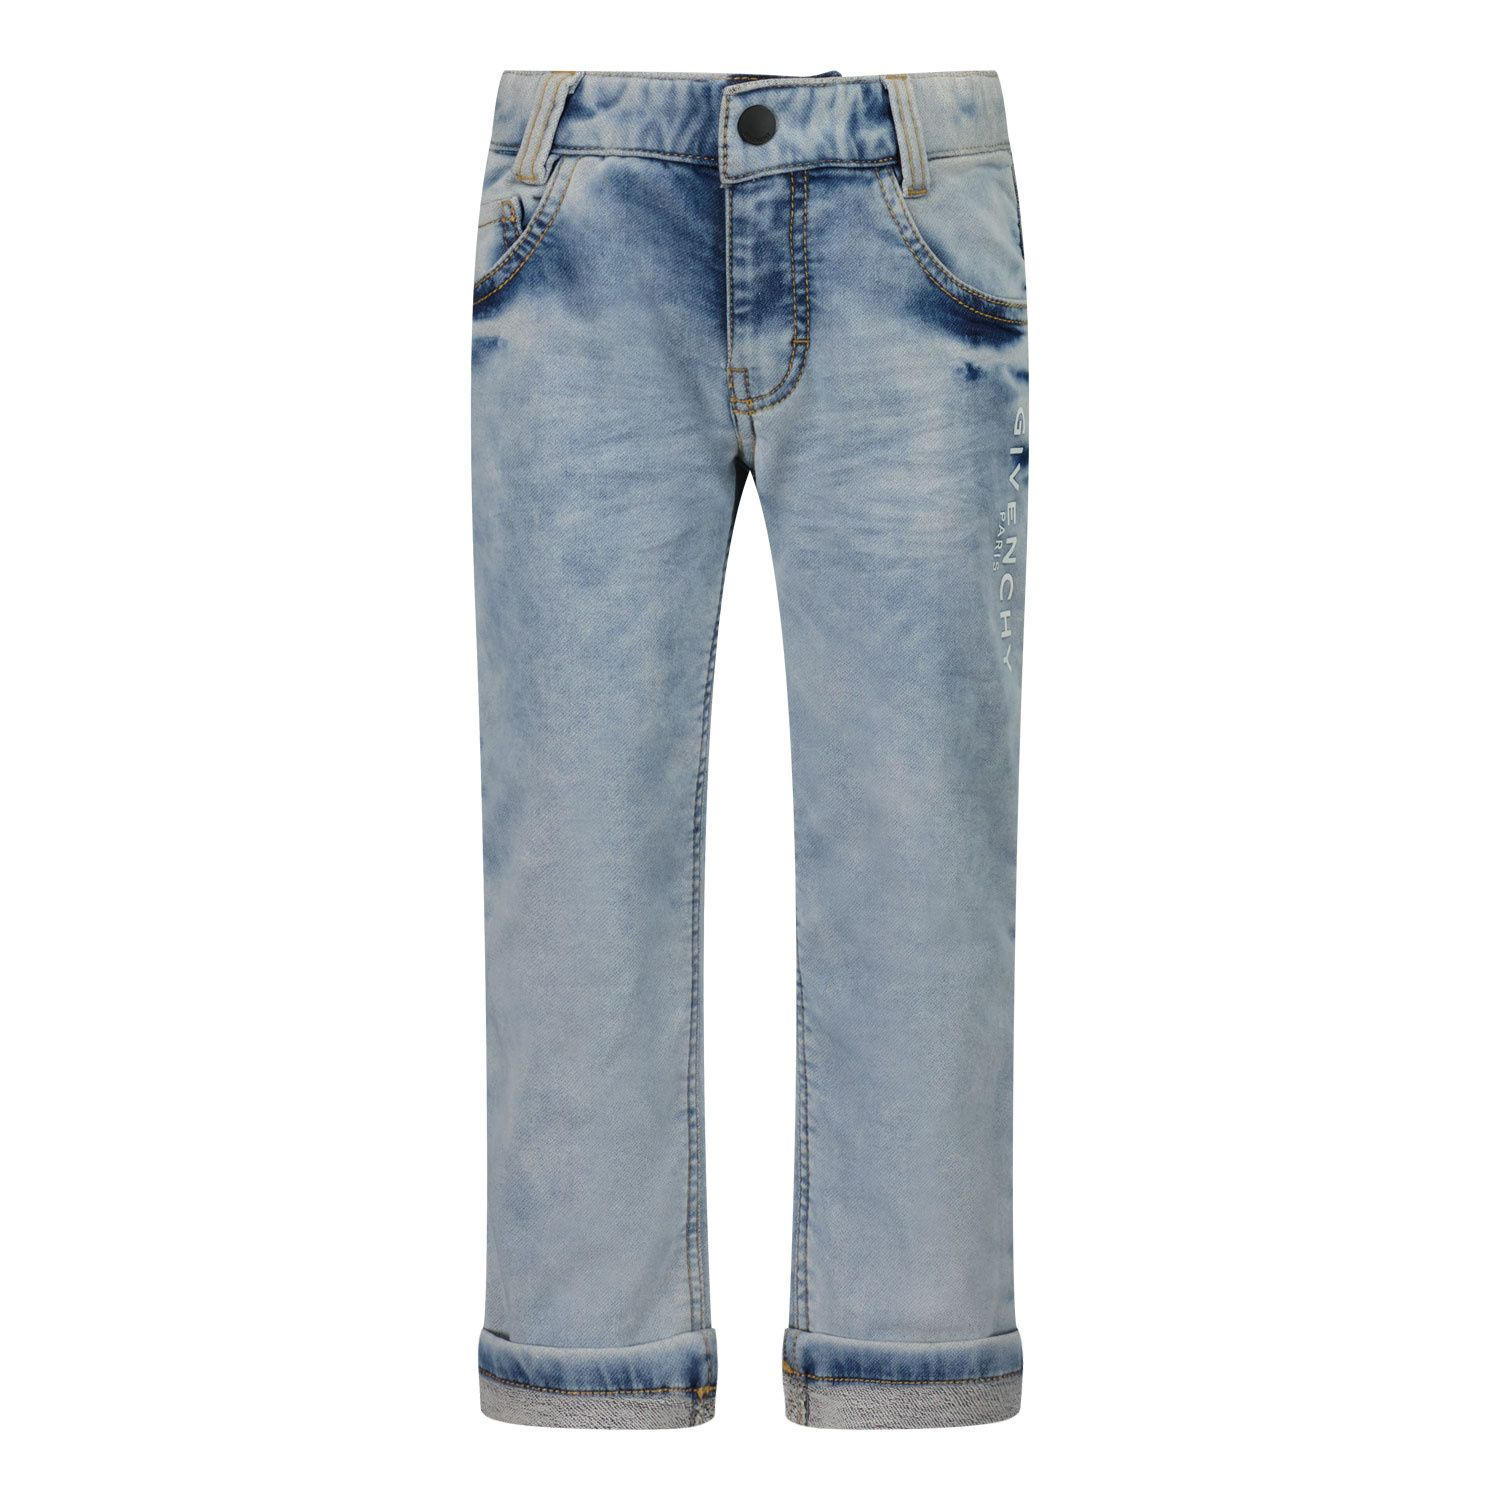 Picture of Givenchy H04097 baby pants jeans